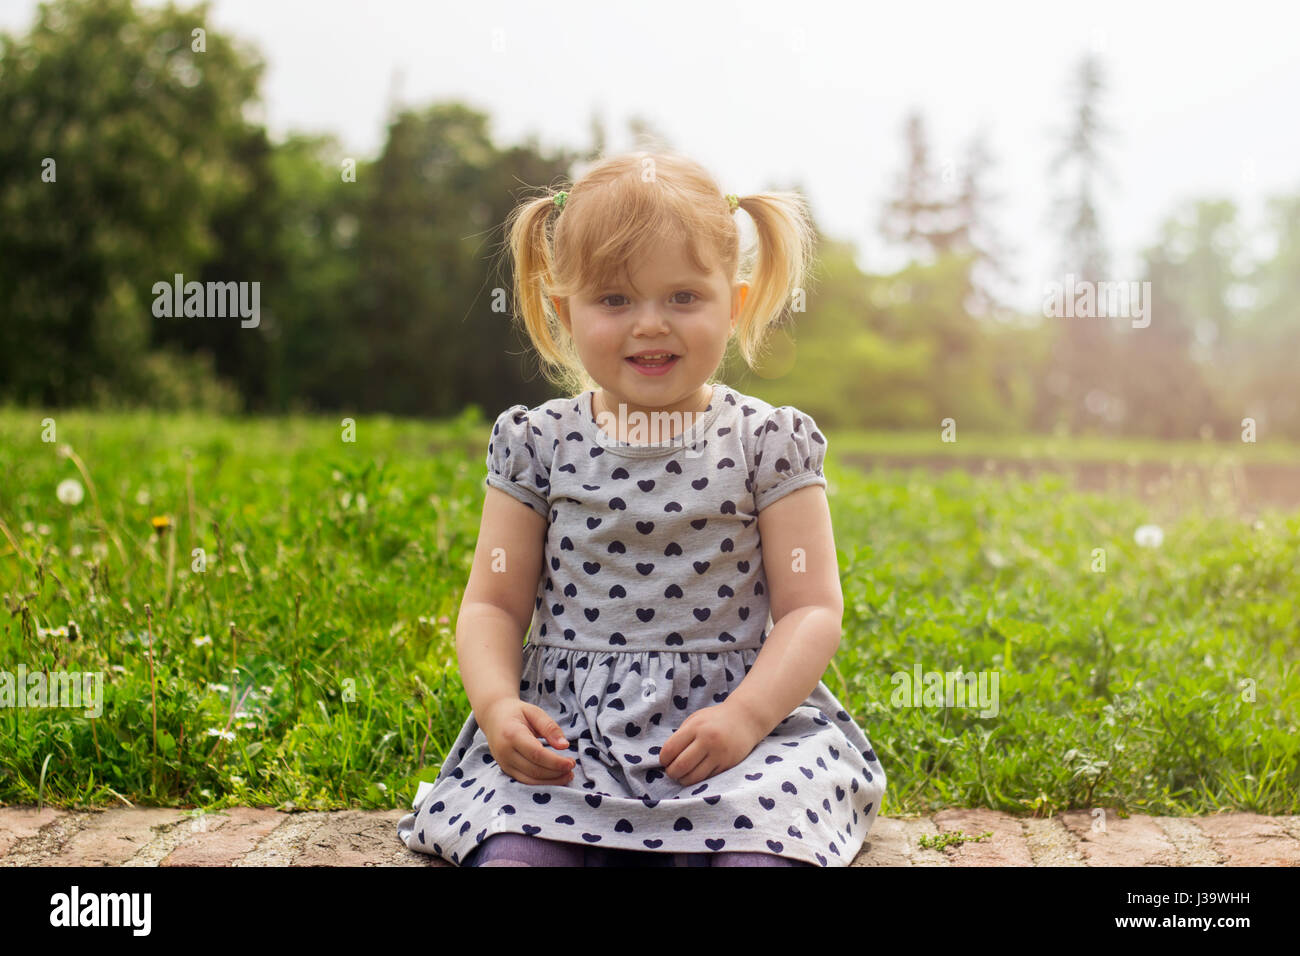 Portrait of a cute toddler girl - Stock Image